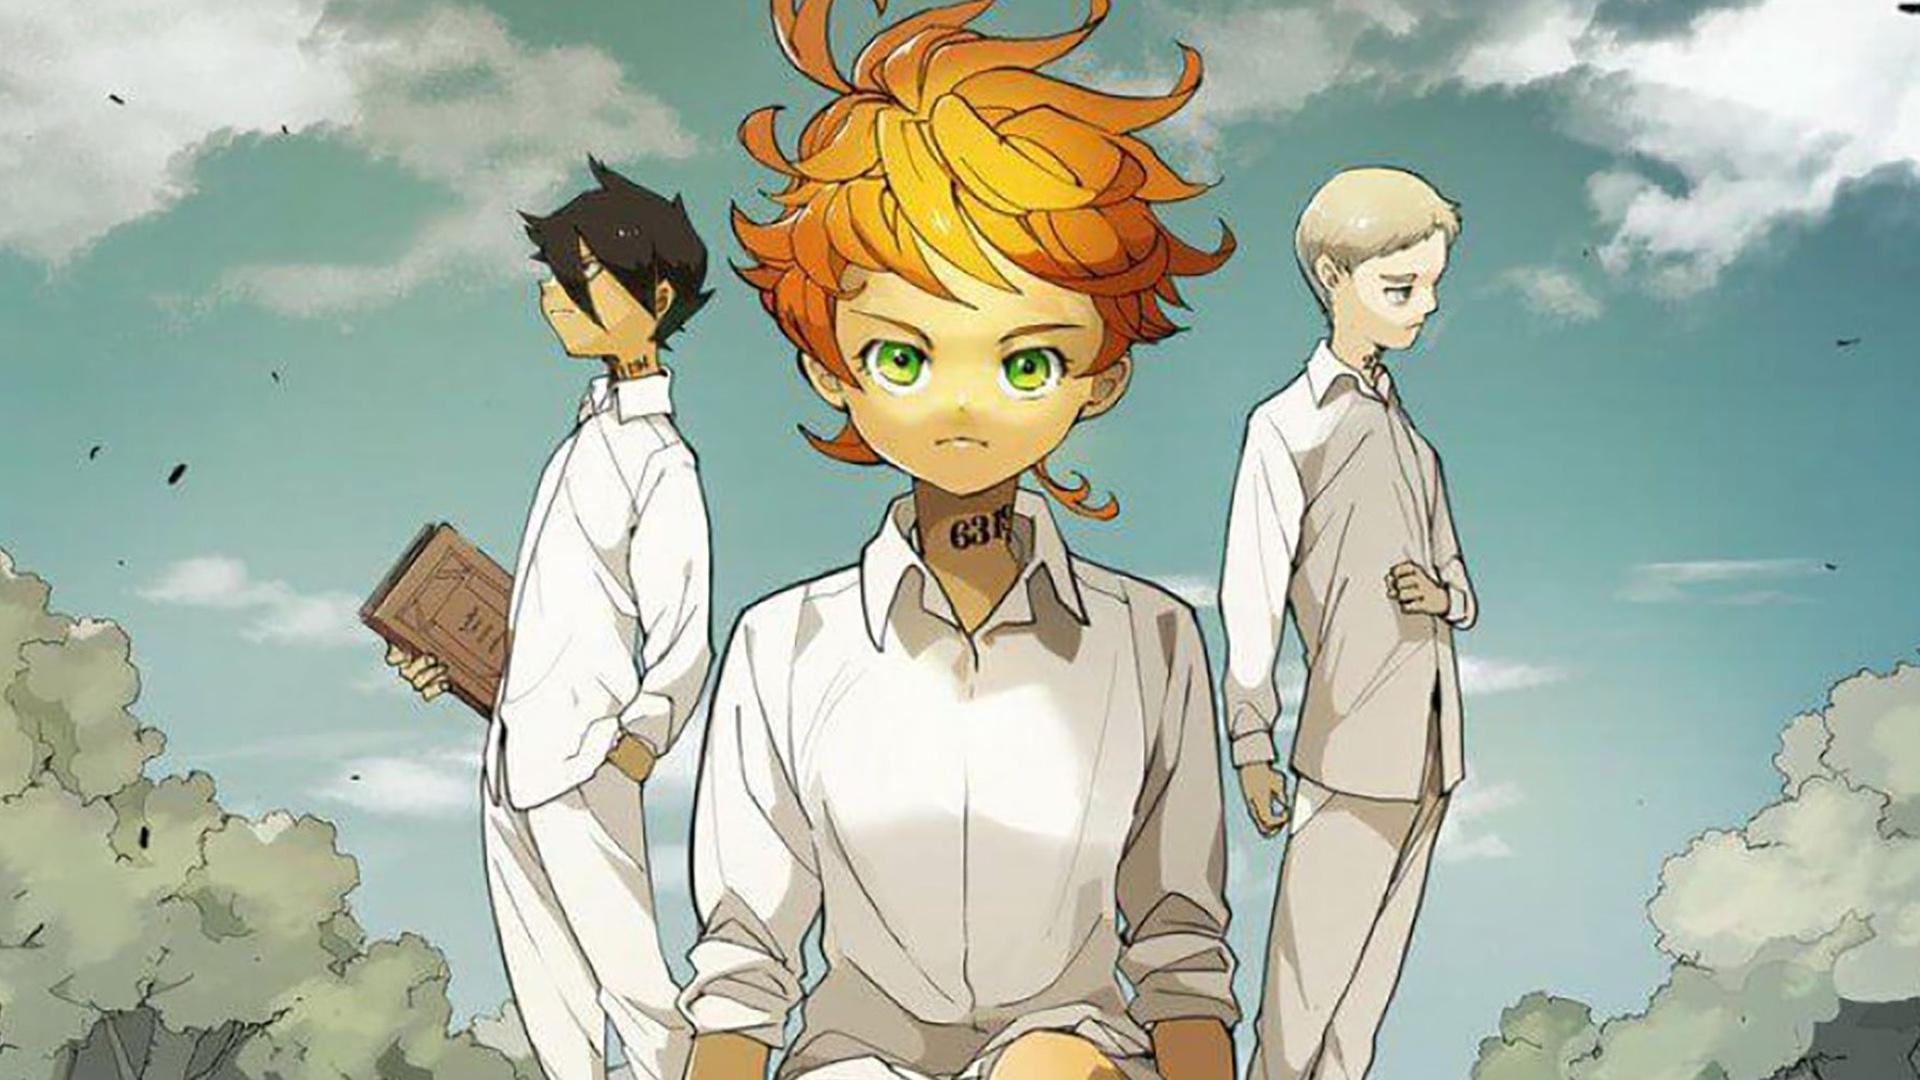 New English Subbed Trailer for The Anime THE PROMISED NEVERLAND